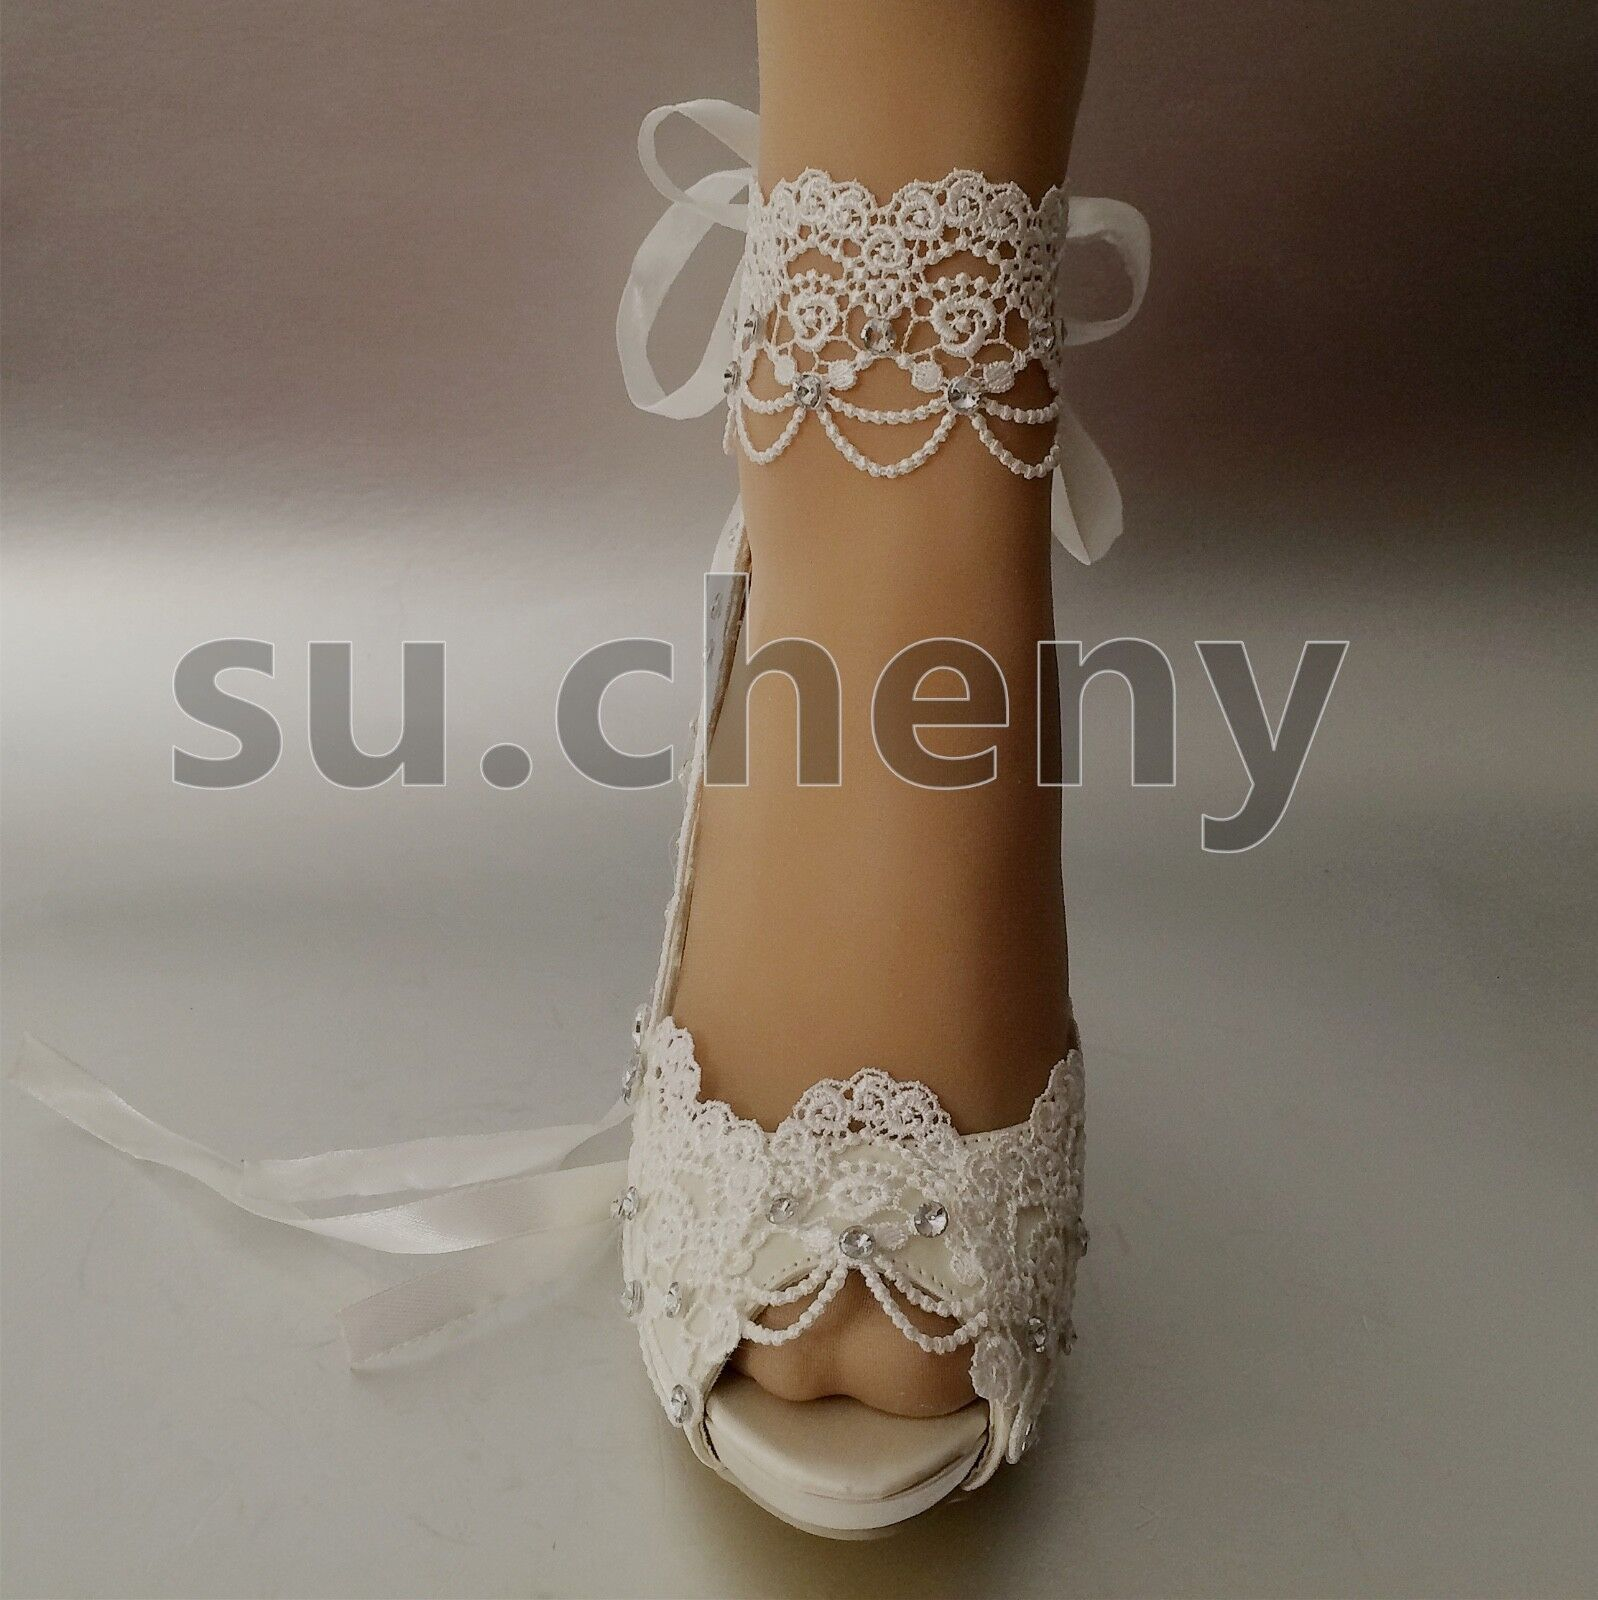 ace40f92ce5 su.cheny 3 4 heel white ivory satin lace ribbon peep toe Wedding Bridal  shoes